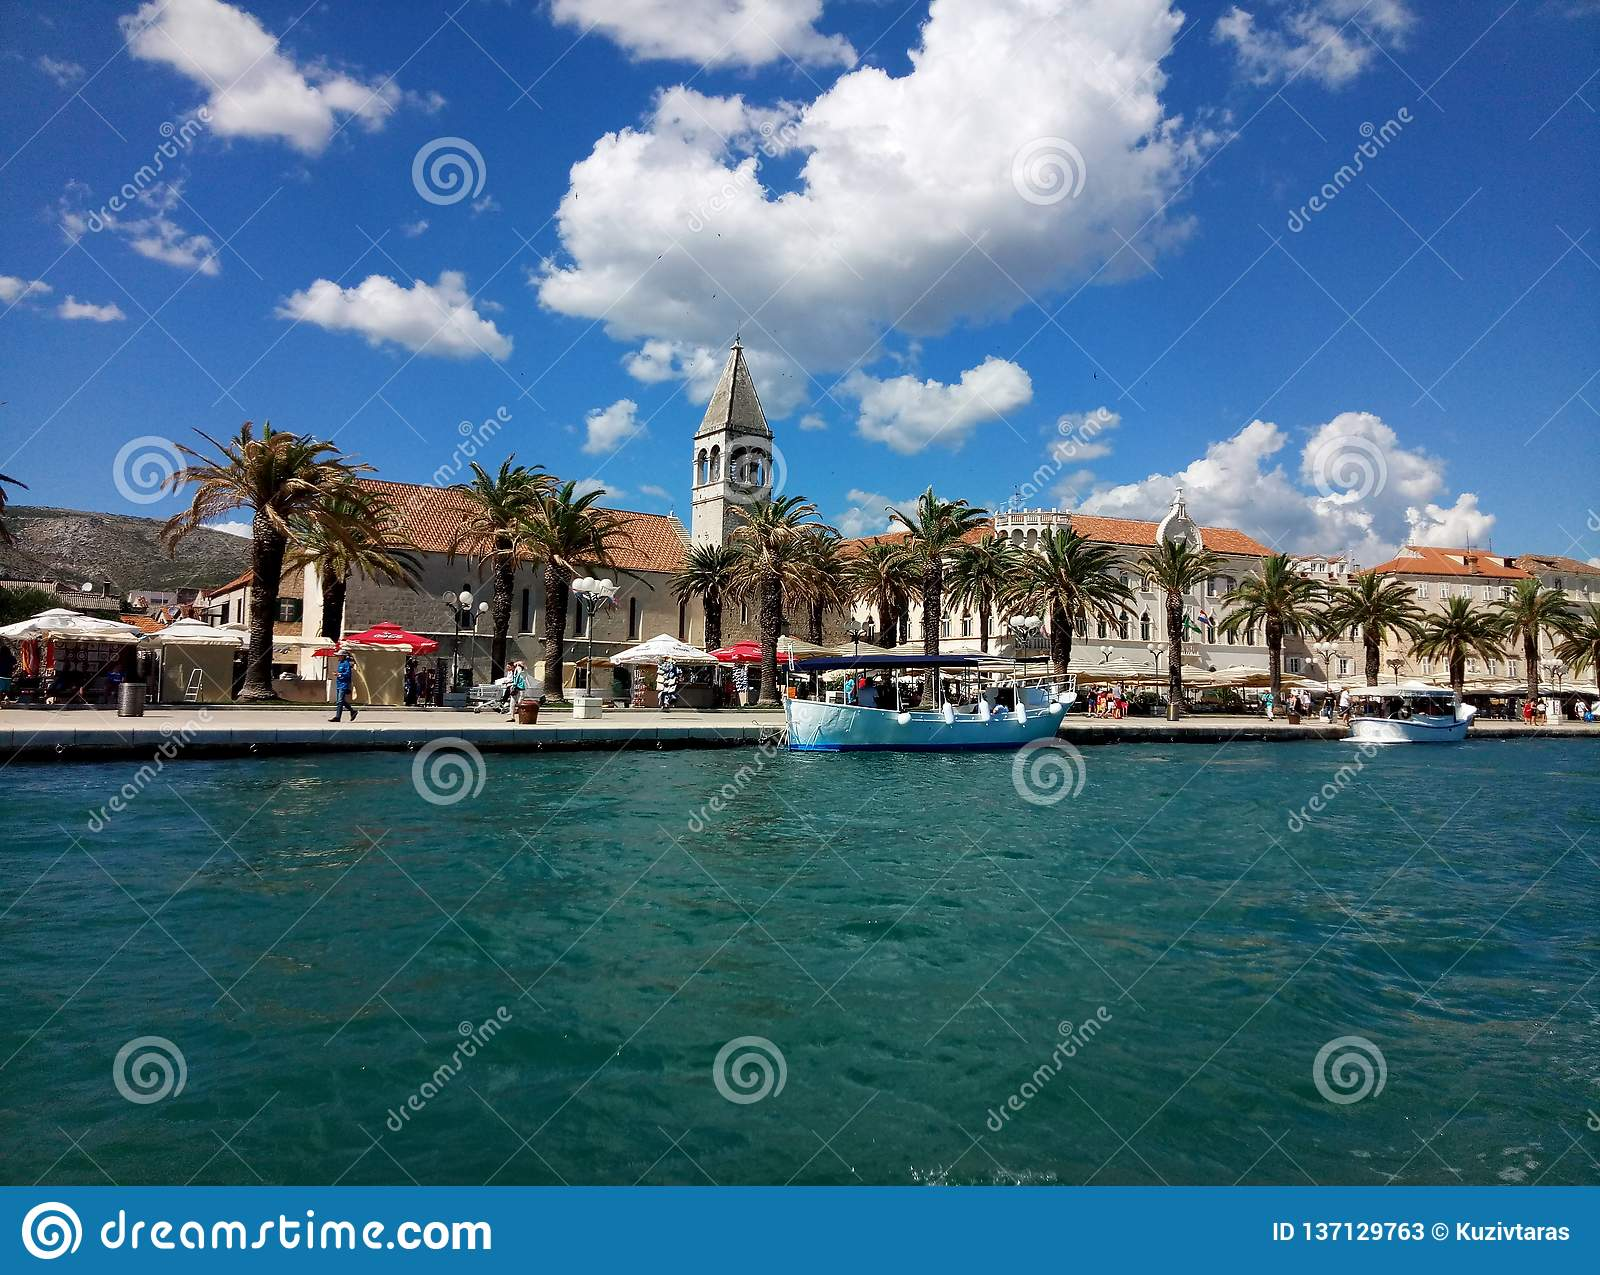 Trogir / Croatia - June 26 2017: A waterfront view on the marine promenade of Trogir from the sightseeing boat